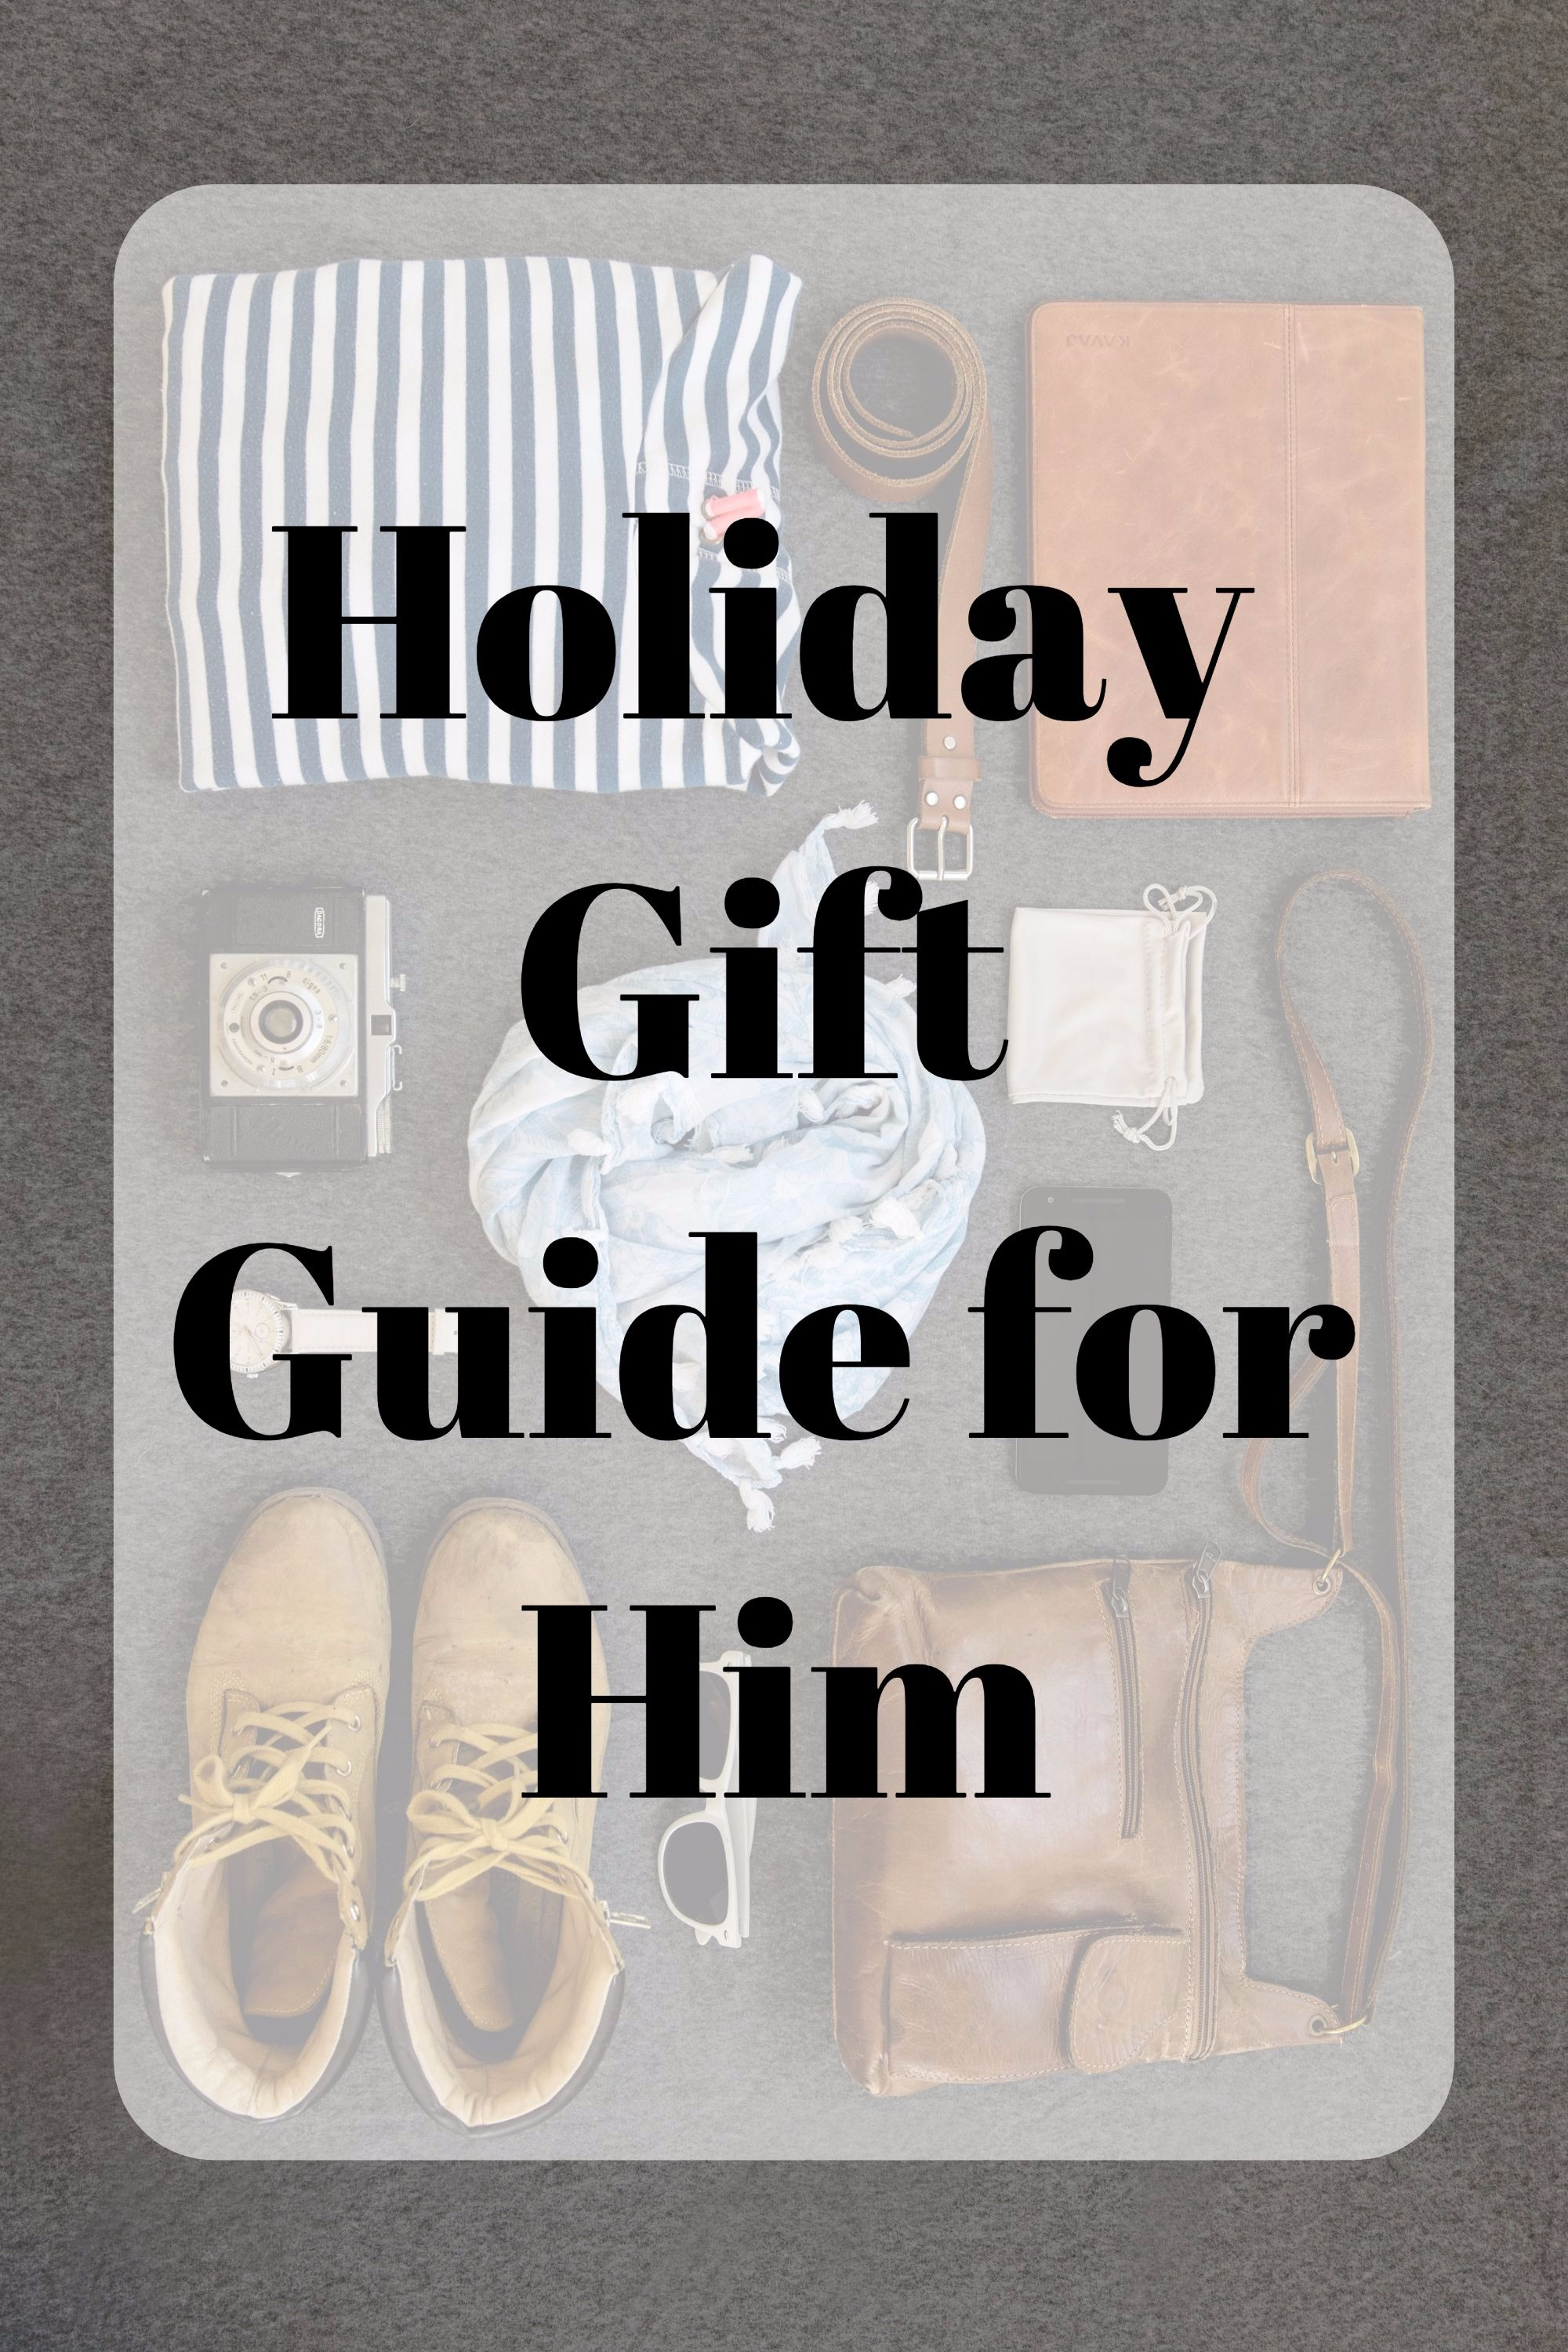 holiday gift ideas for him. christmas gift guide for your dad, brother, boyfriend, or husband